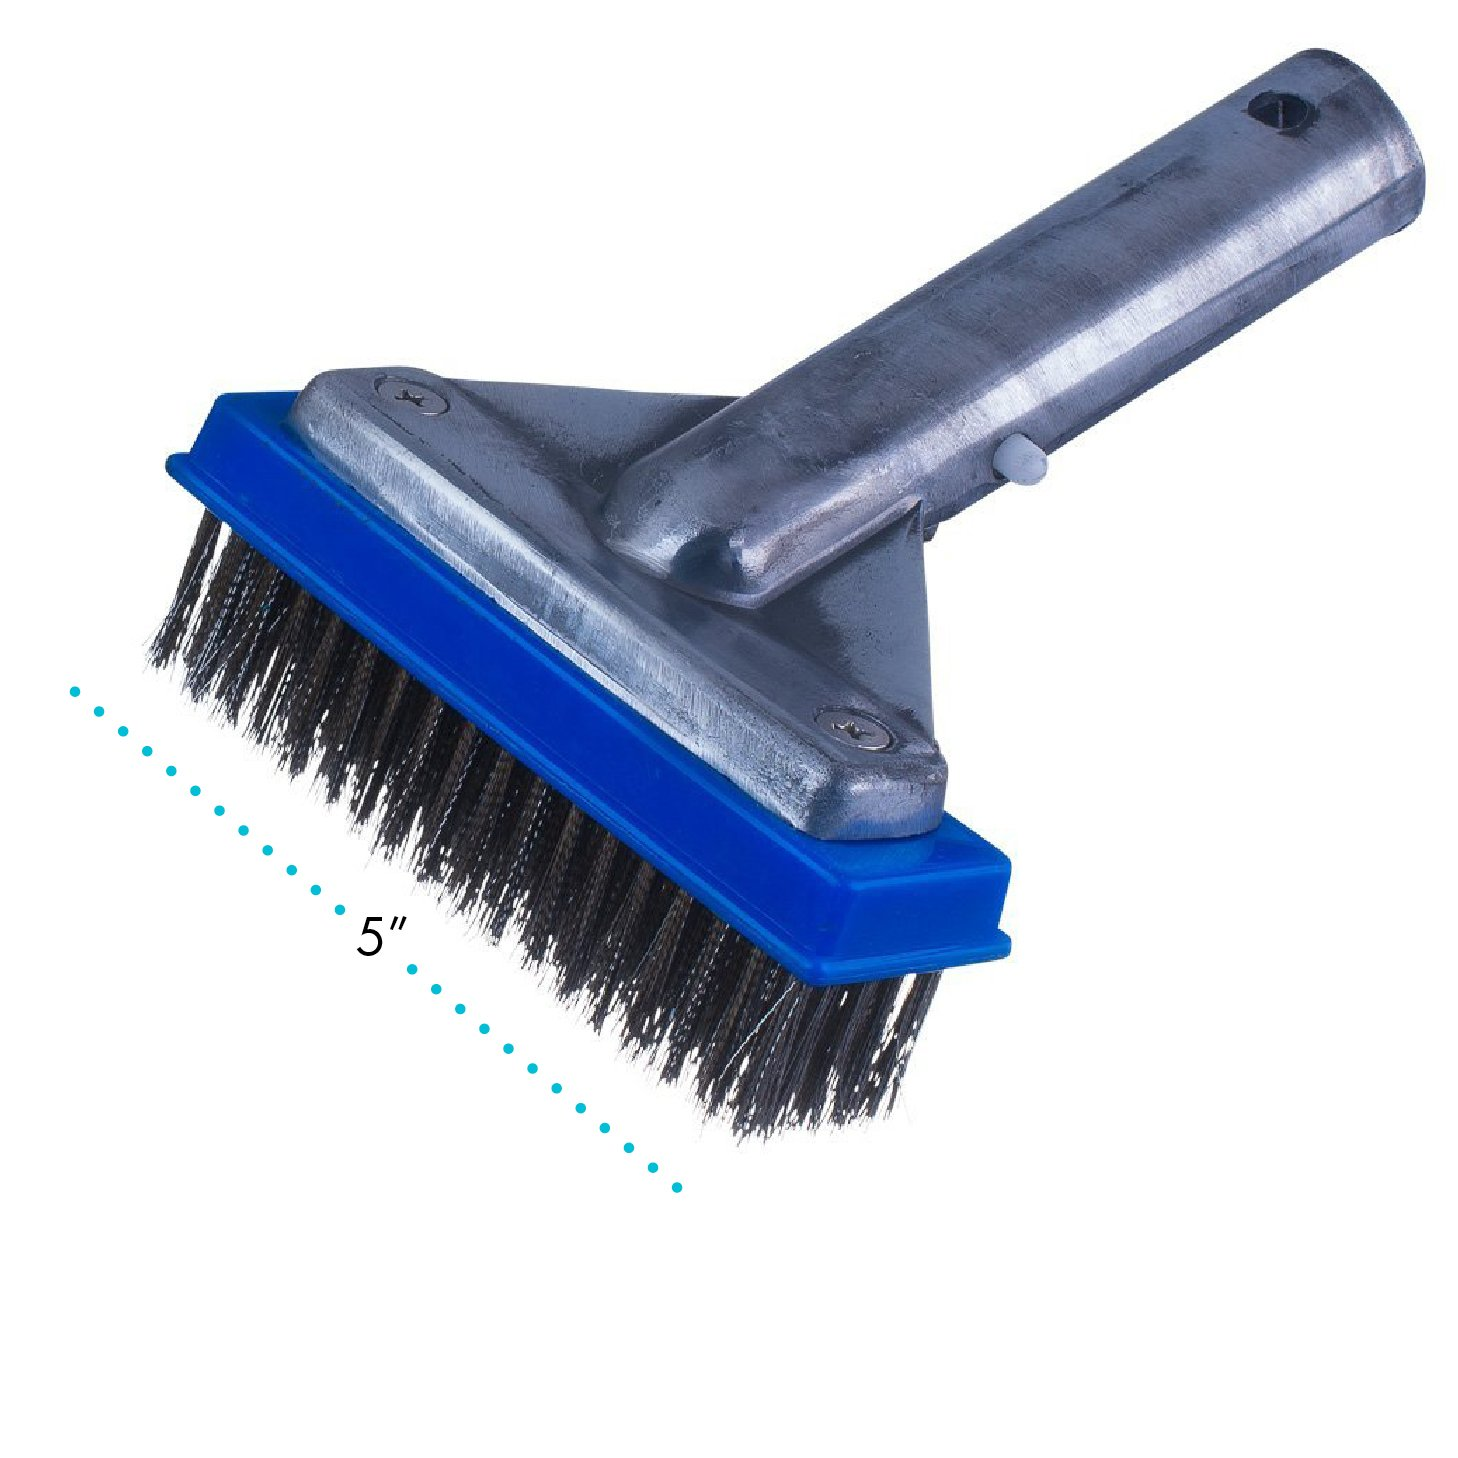 Designed for Concrete and Gunite Pools Great on Extremely Tough Stains Milliard 5 Heavy Duty Wire Pool Algae Brush